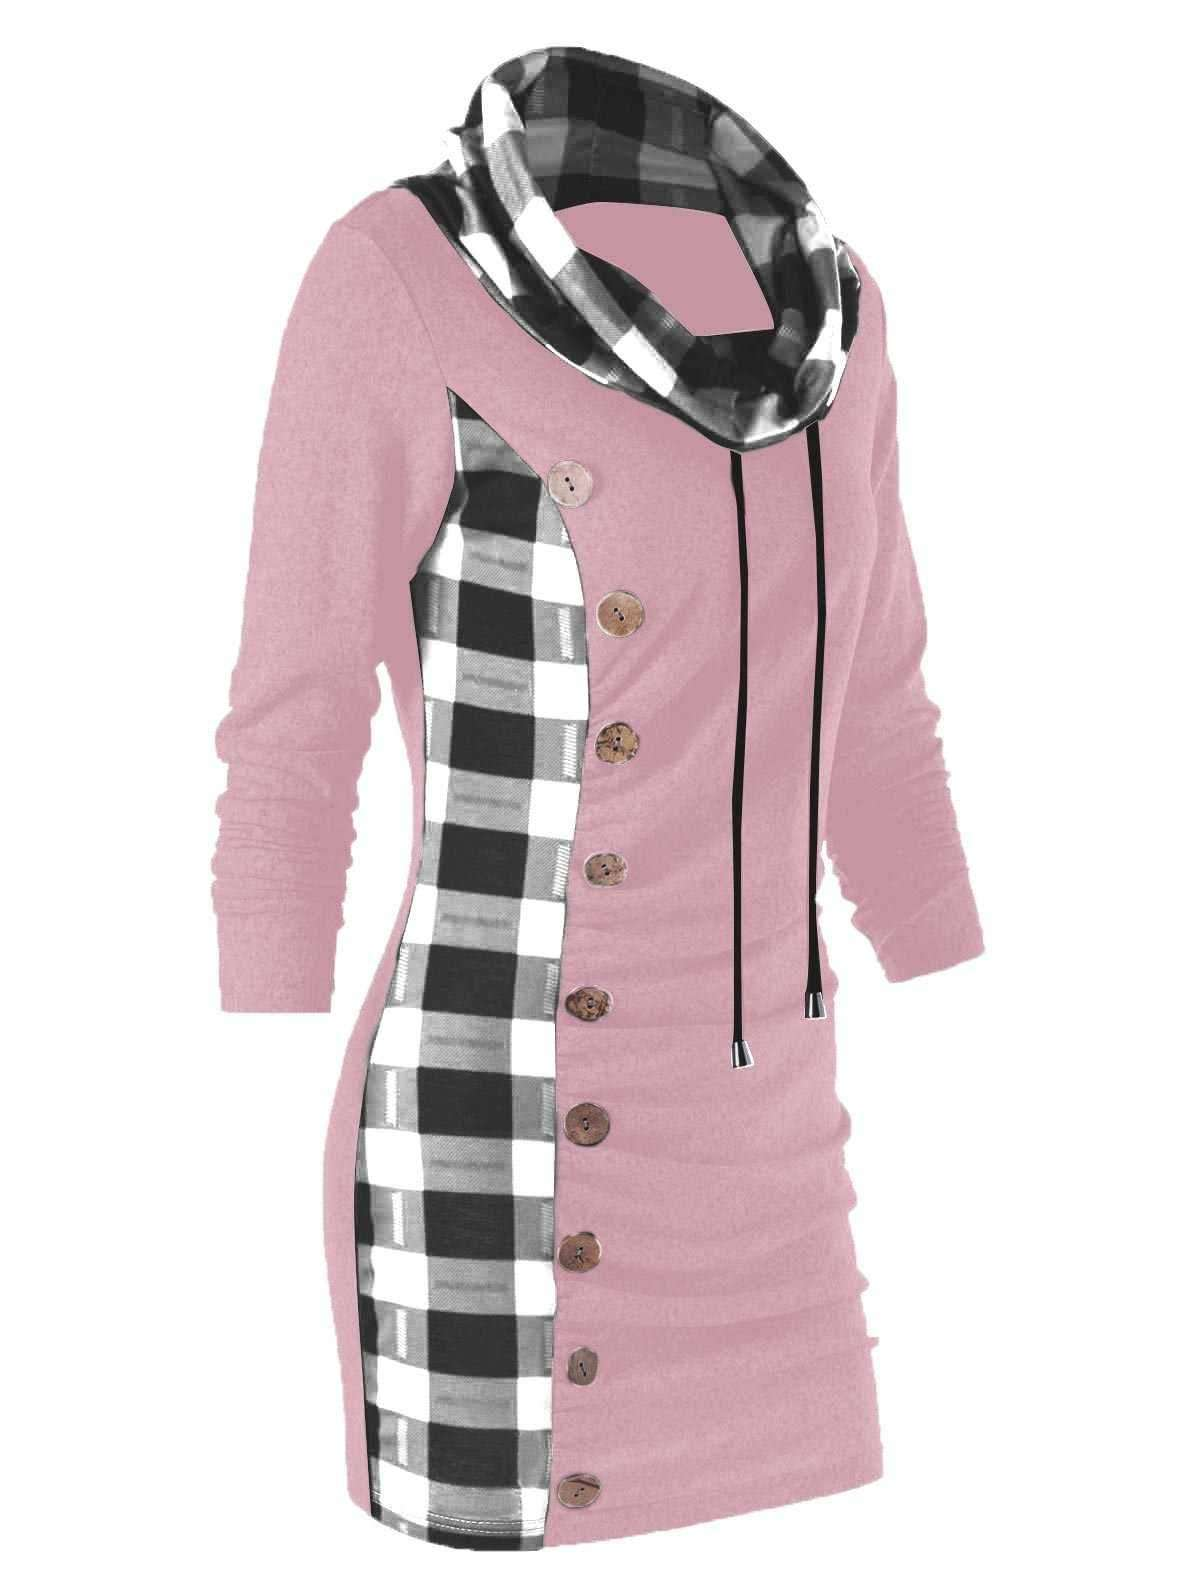 Plaid Trim Cowl Neck Tunic Sweatshirt Dress